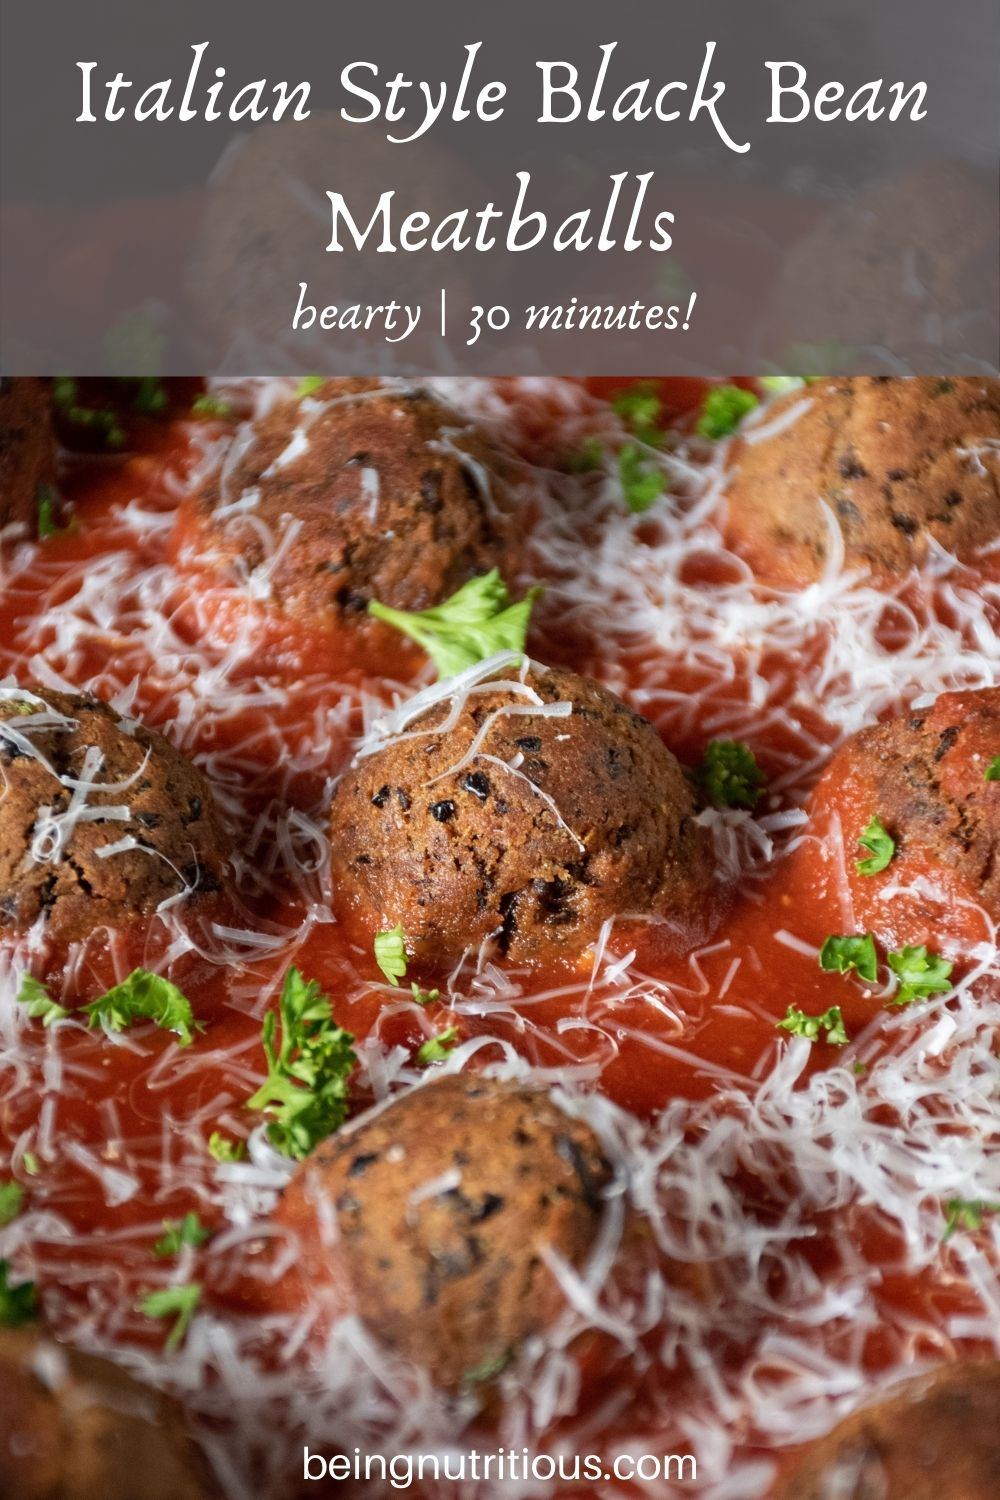 Skillet with meatballs made of black beans with marinara sauce. Text overlay: Italian Style Black Bean Meatballs; hearty, 30 minutes!